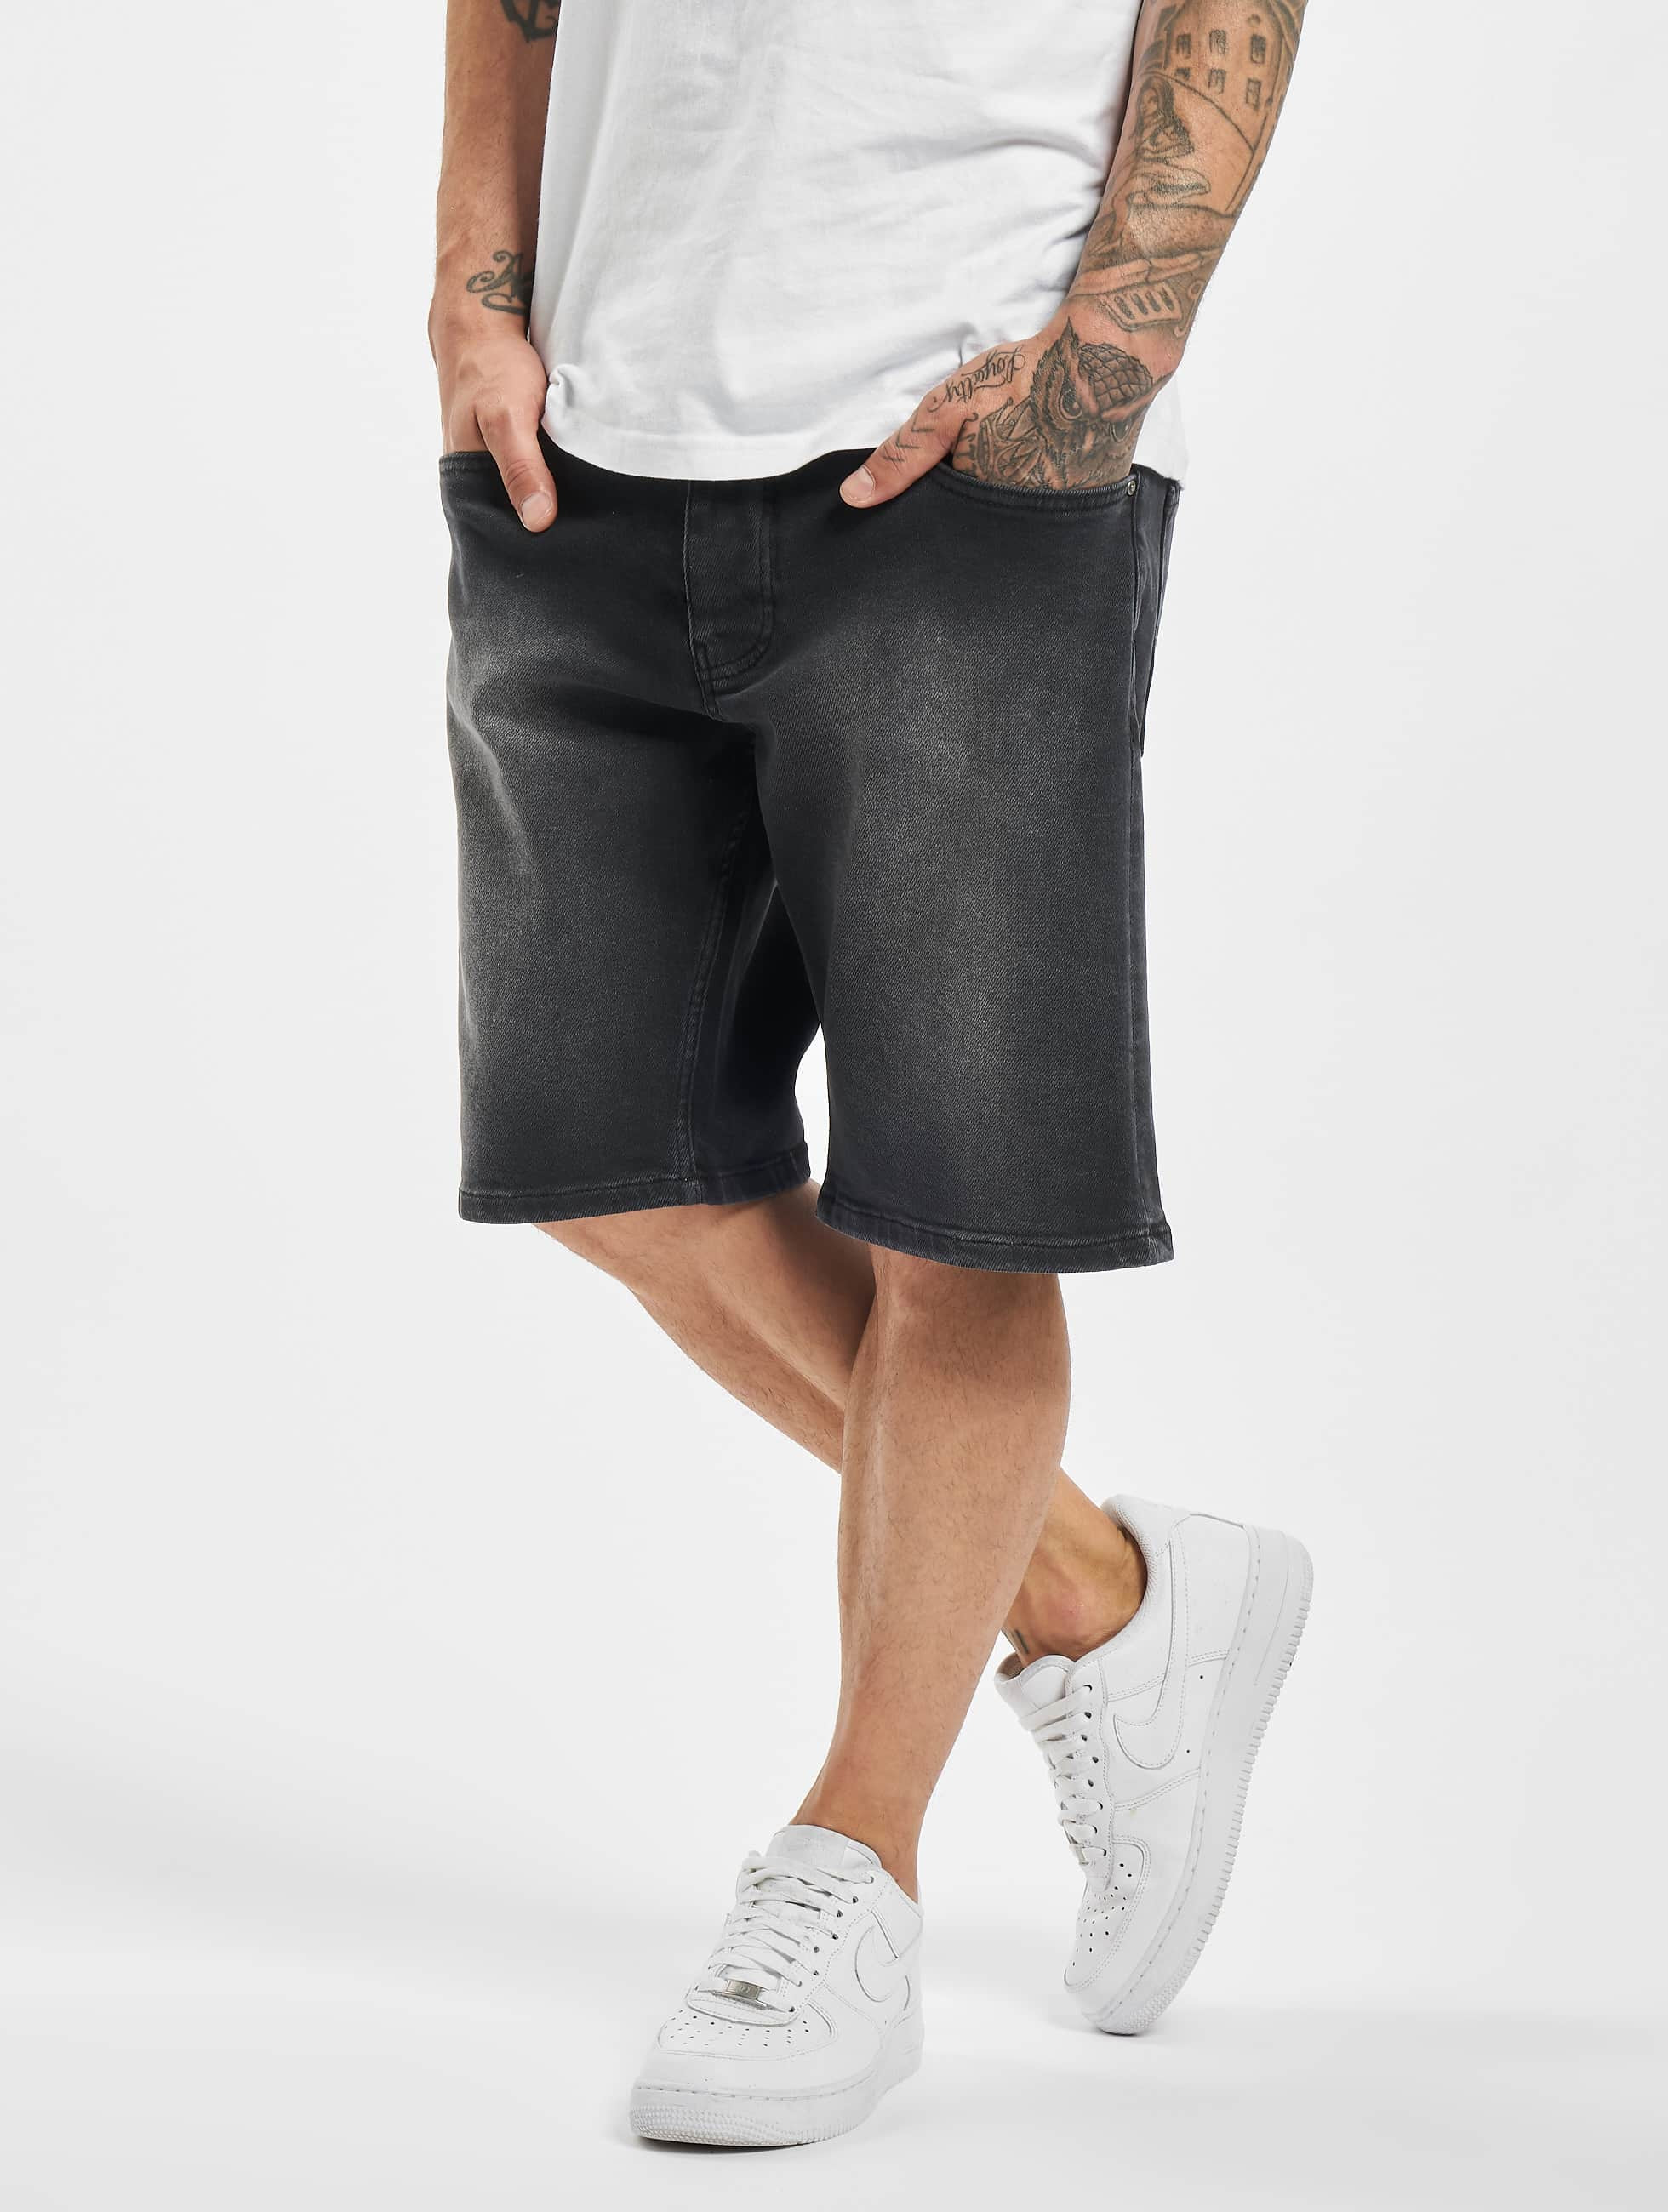 DEF / Short Georg in black W 36